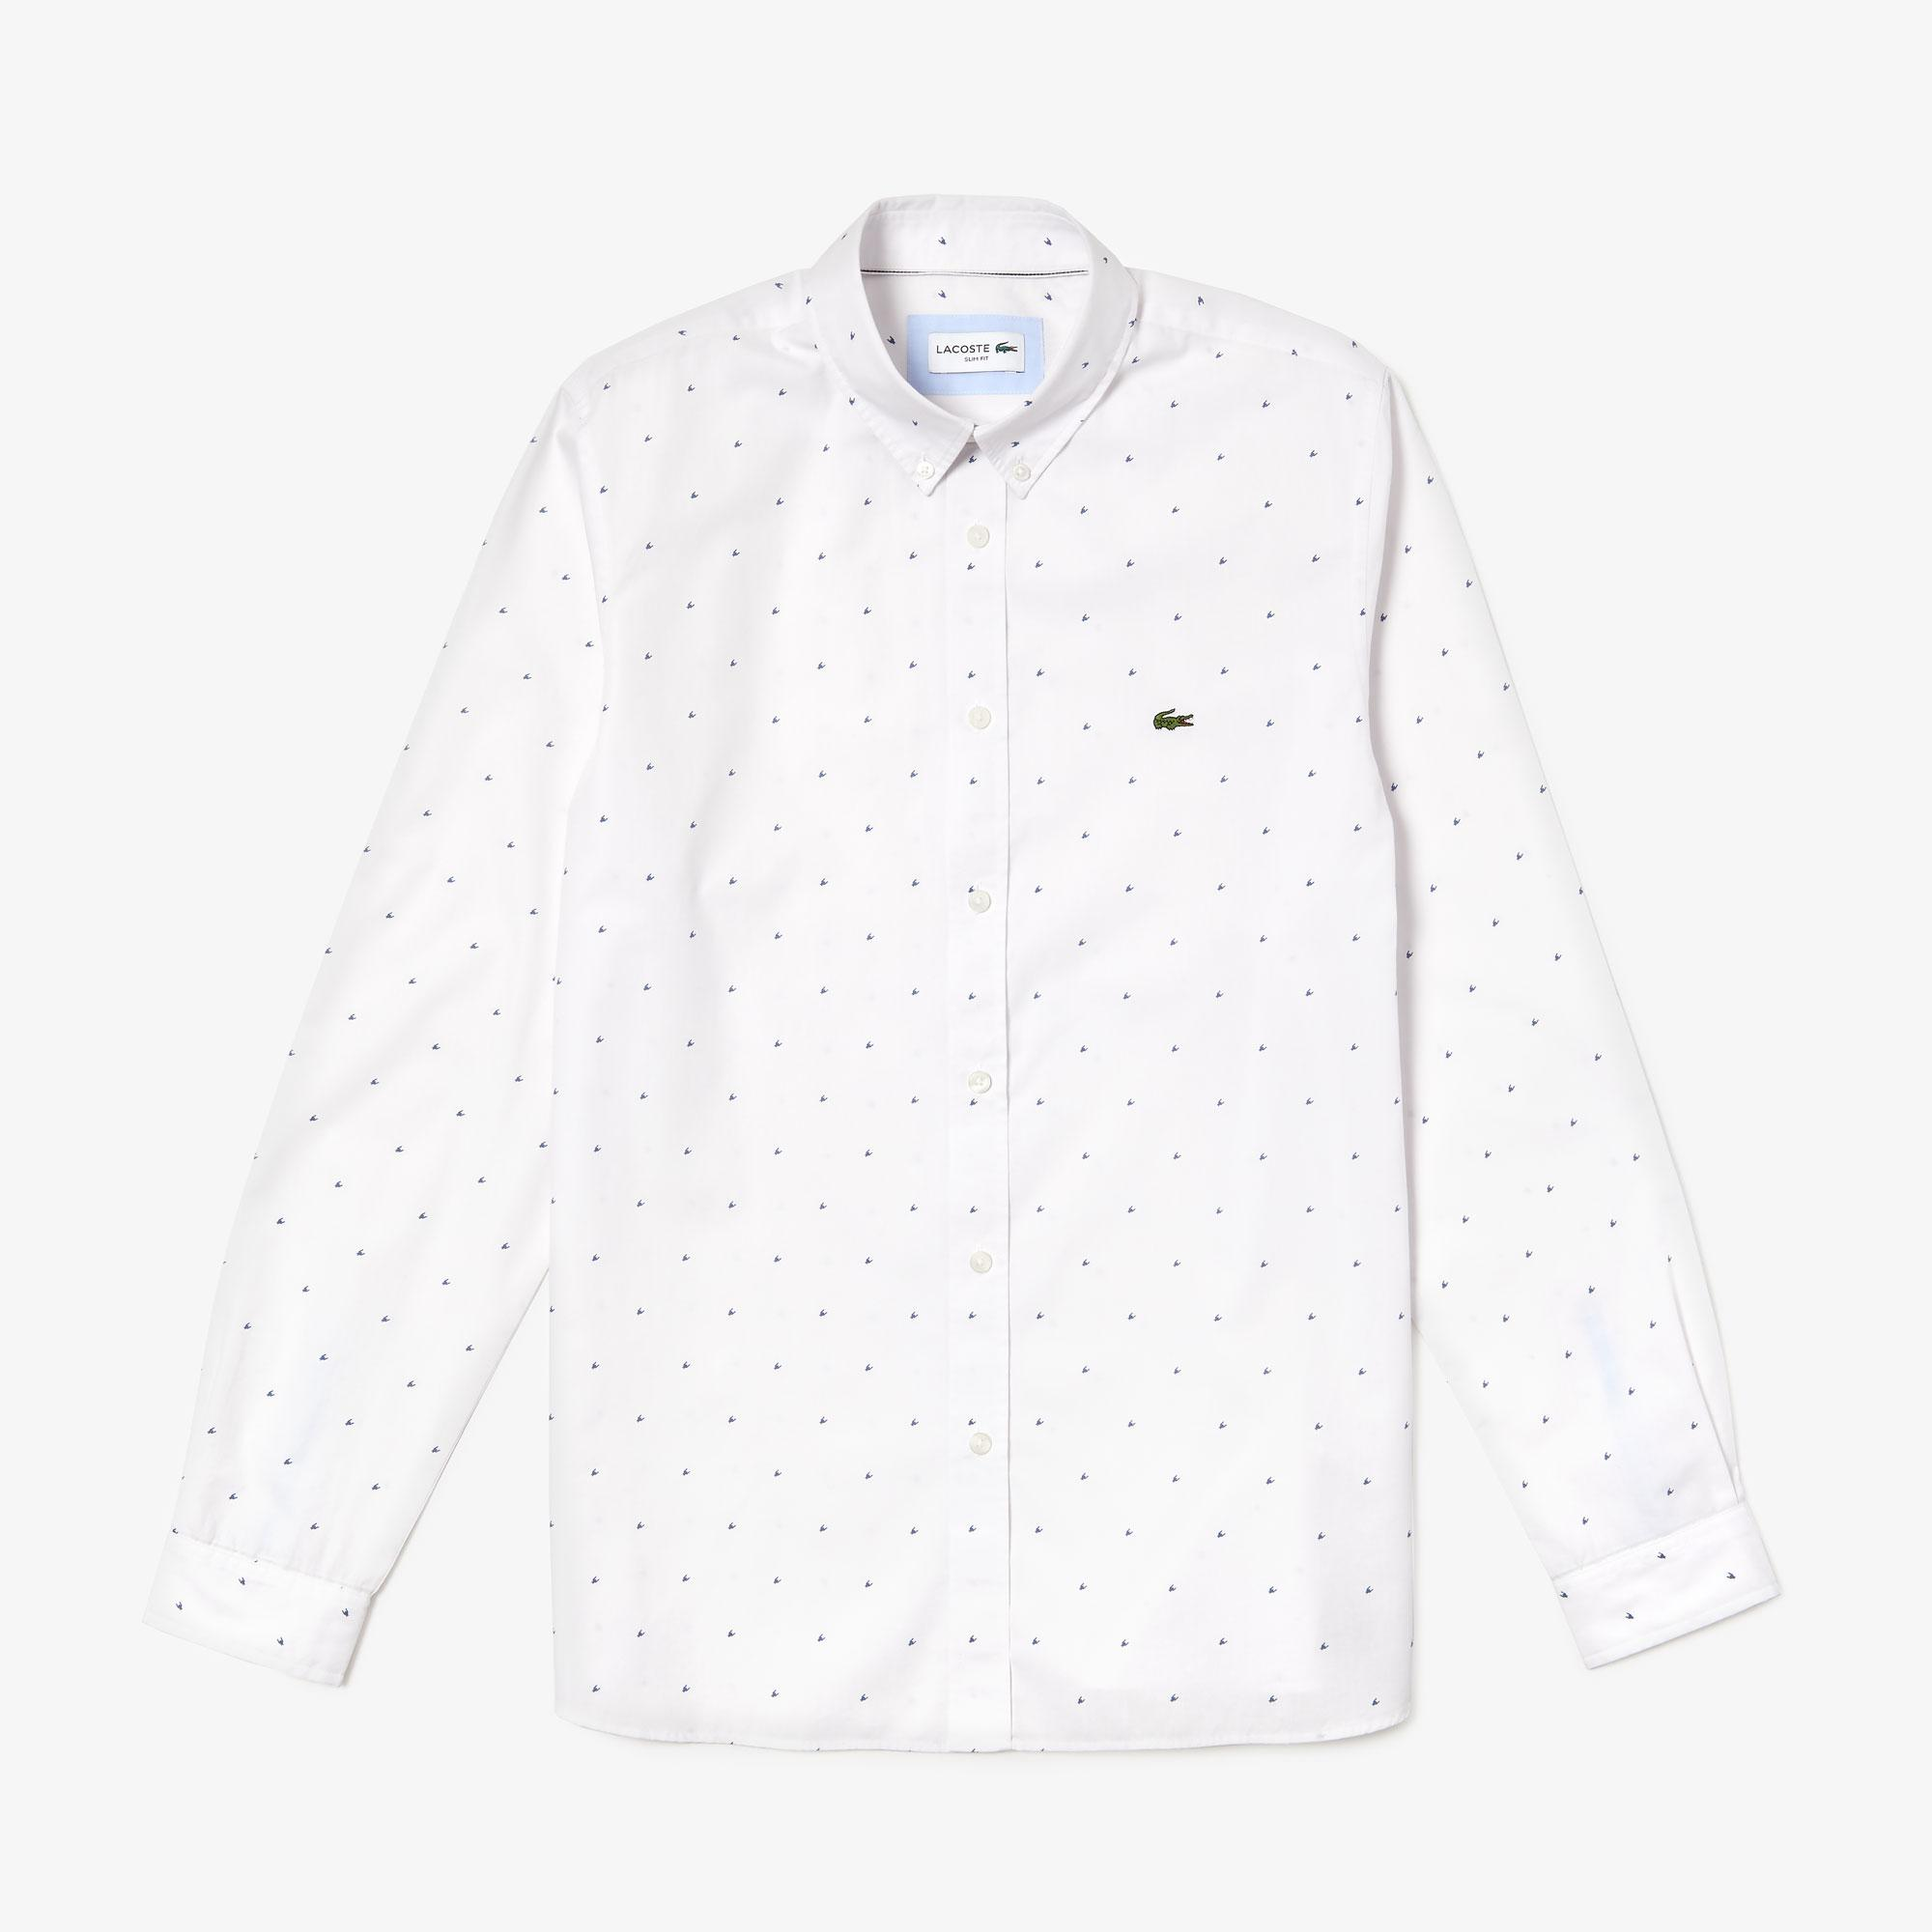 Lacoste Men's Slim Fit Print Cotton Poplin Shirt